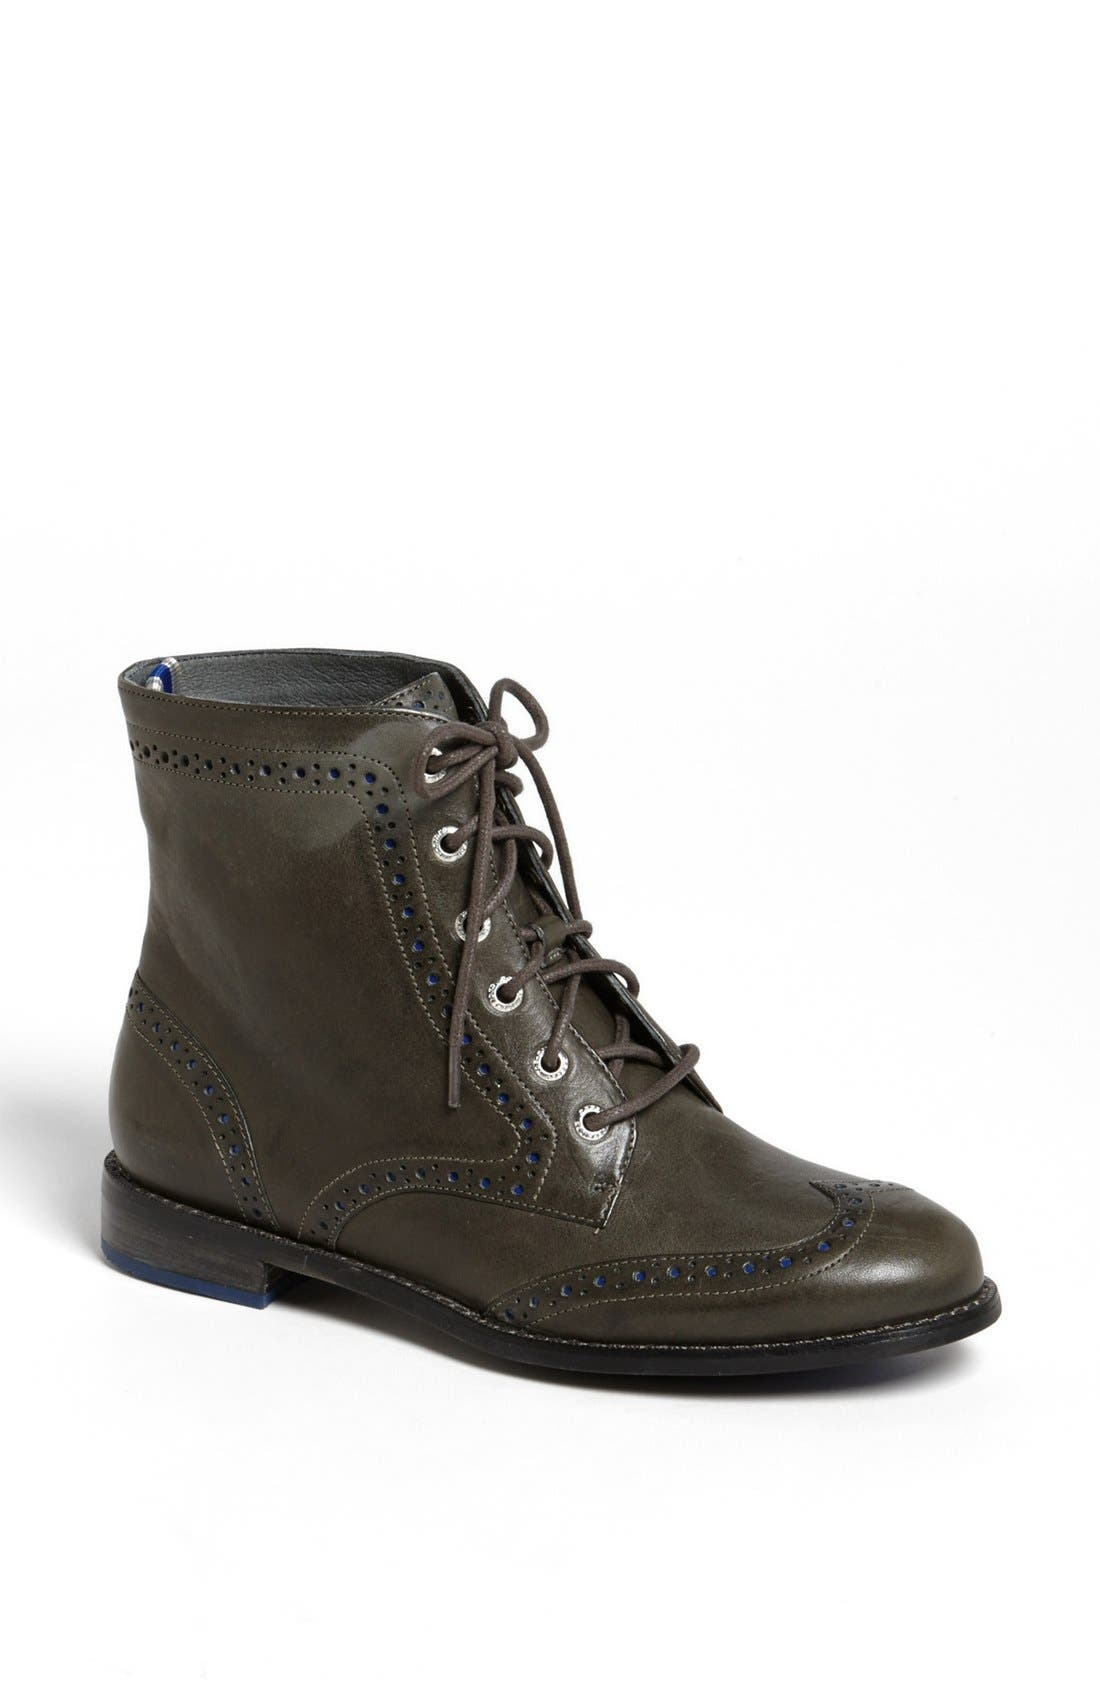 Alternate Image 1 Selected - Sperry Top-Sider® 'Adeline' Boot